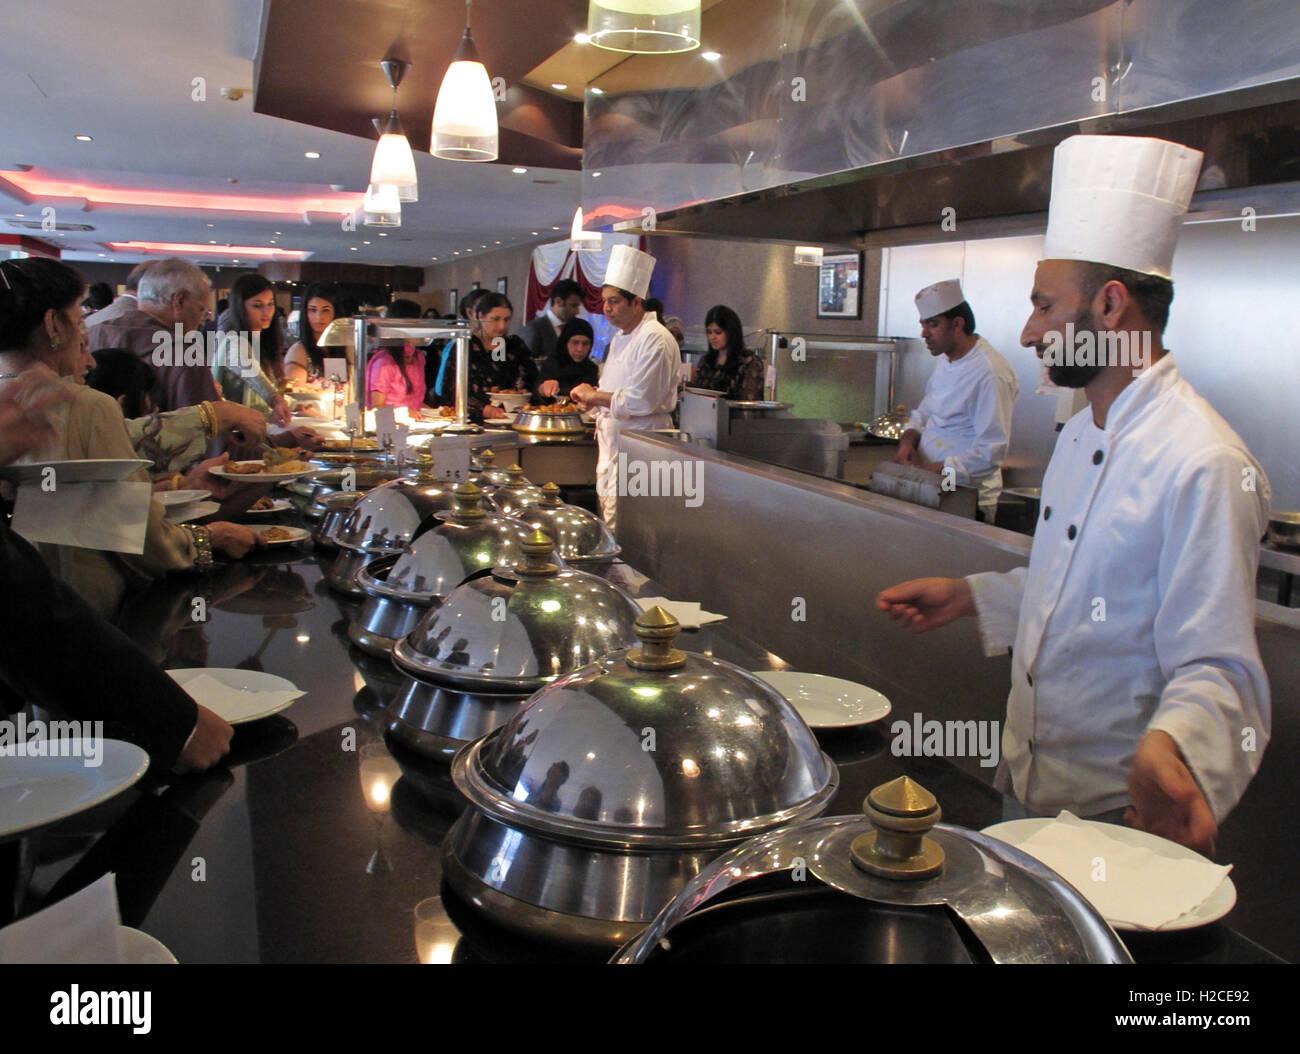 Indian buffet wedding lunch, chefs, various food dishes - Stock Image